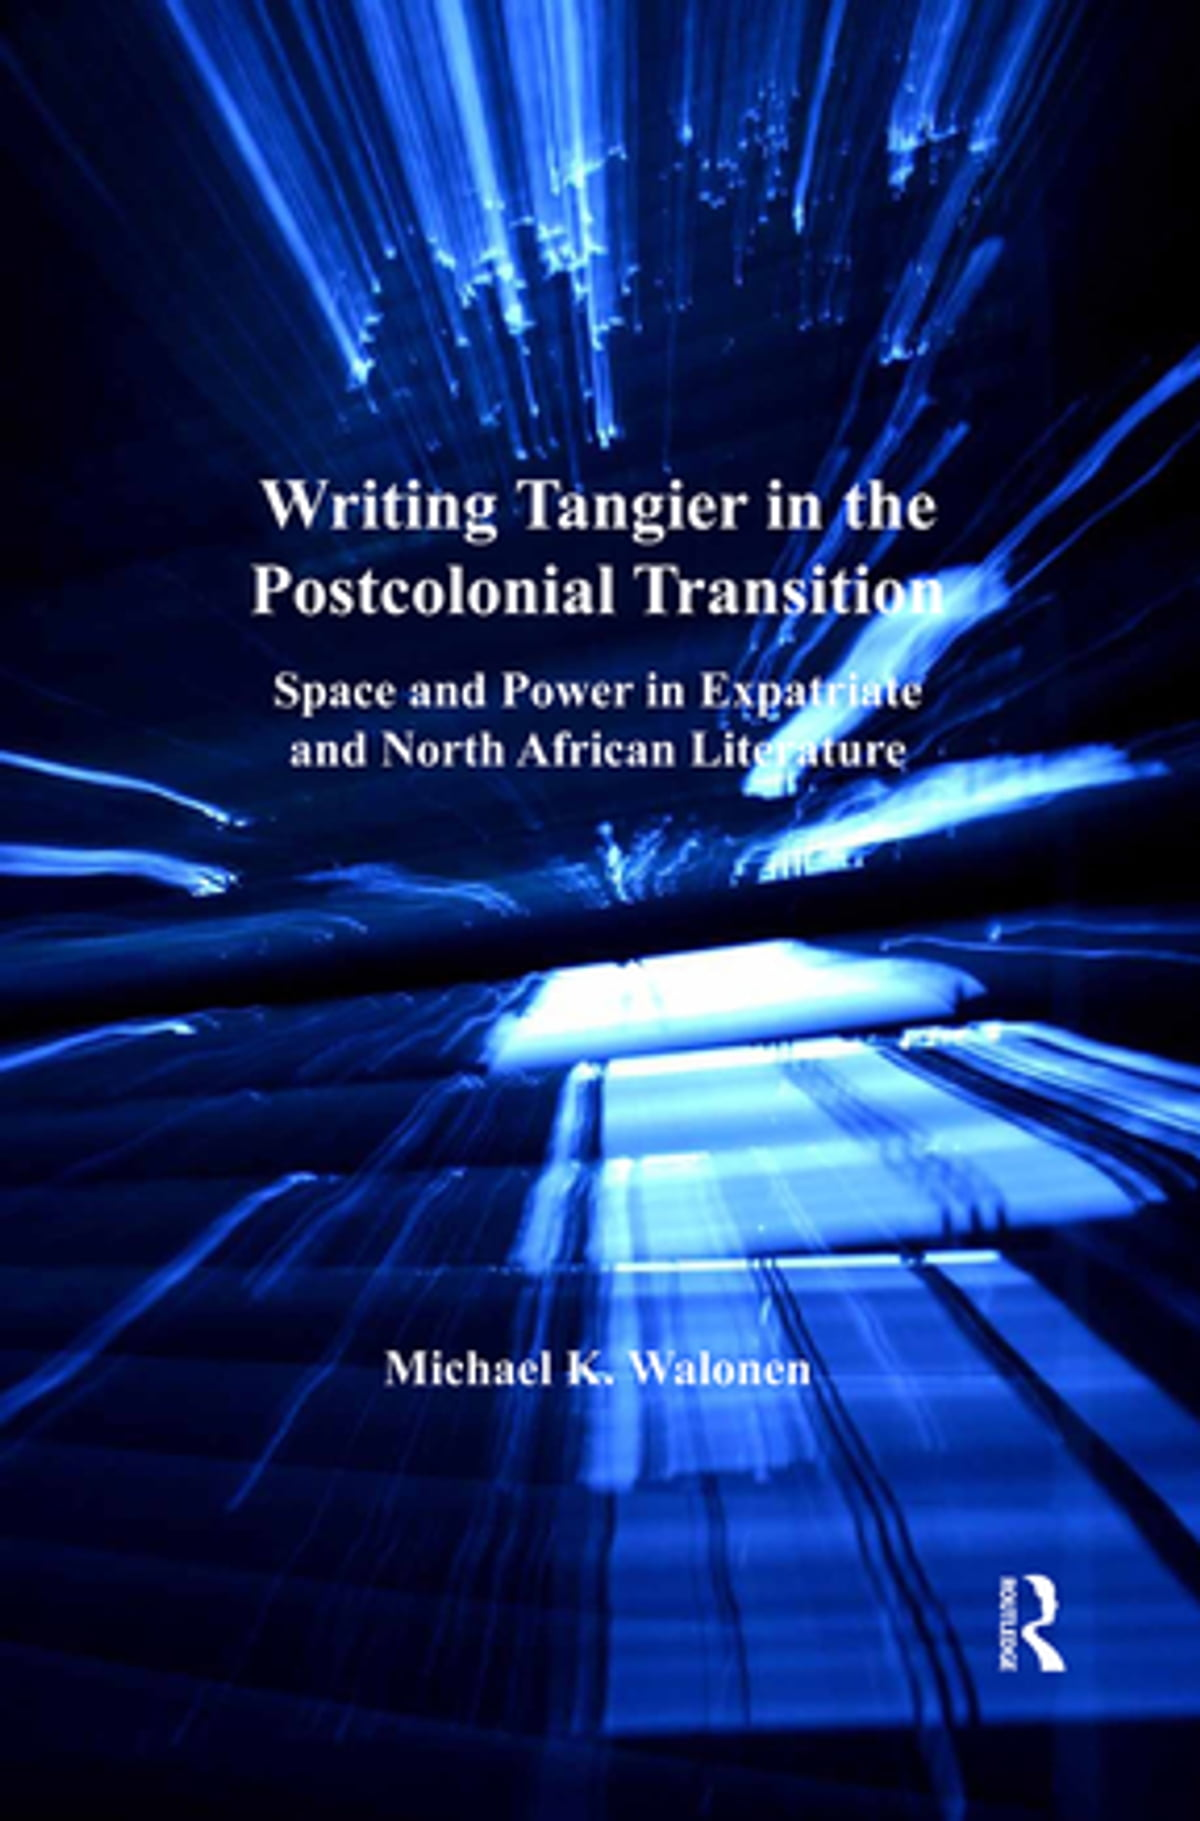 Writing Tangier in the Postcolonial Transition eBook by Michael K. Walonen  - 9781134787944 | Rakuten Kobo